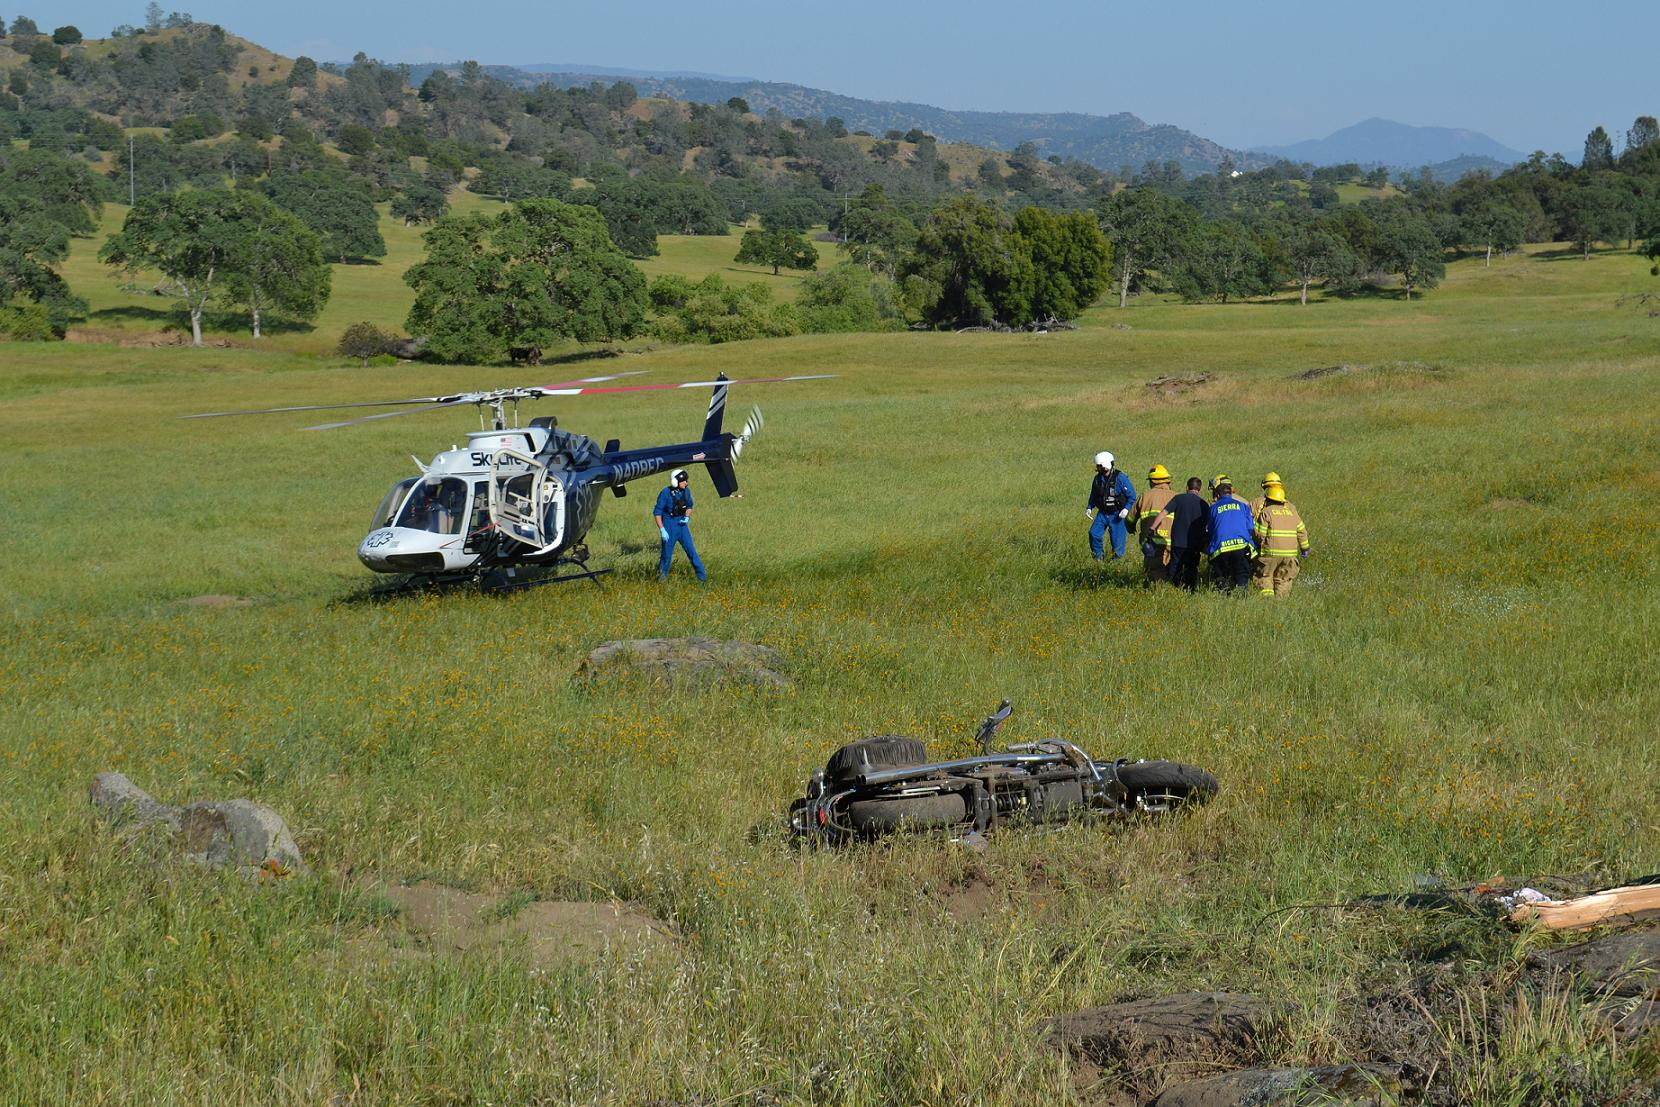 Transfering patient to helicopter 4-21-13